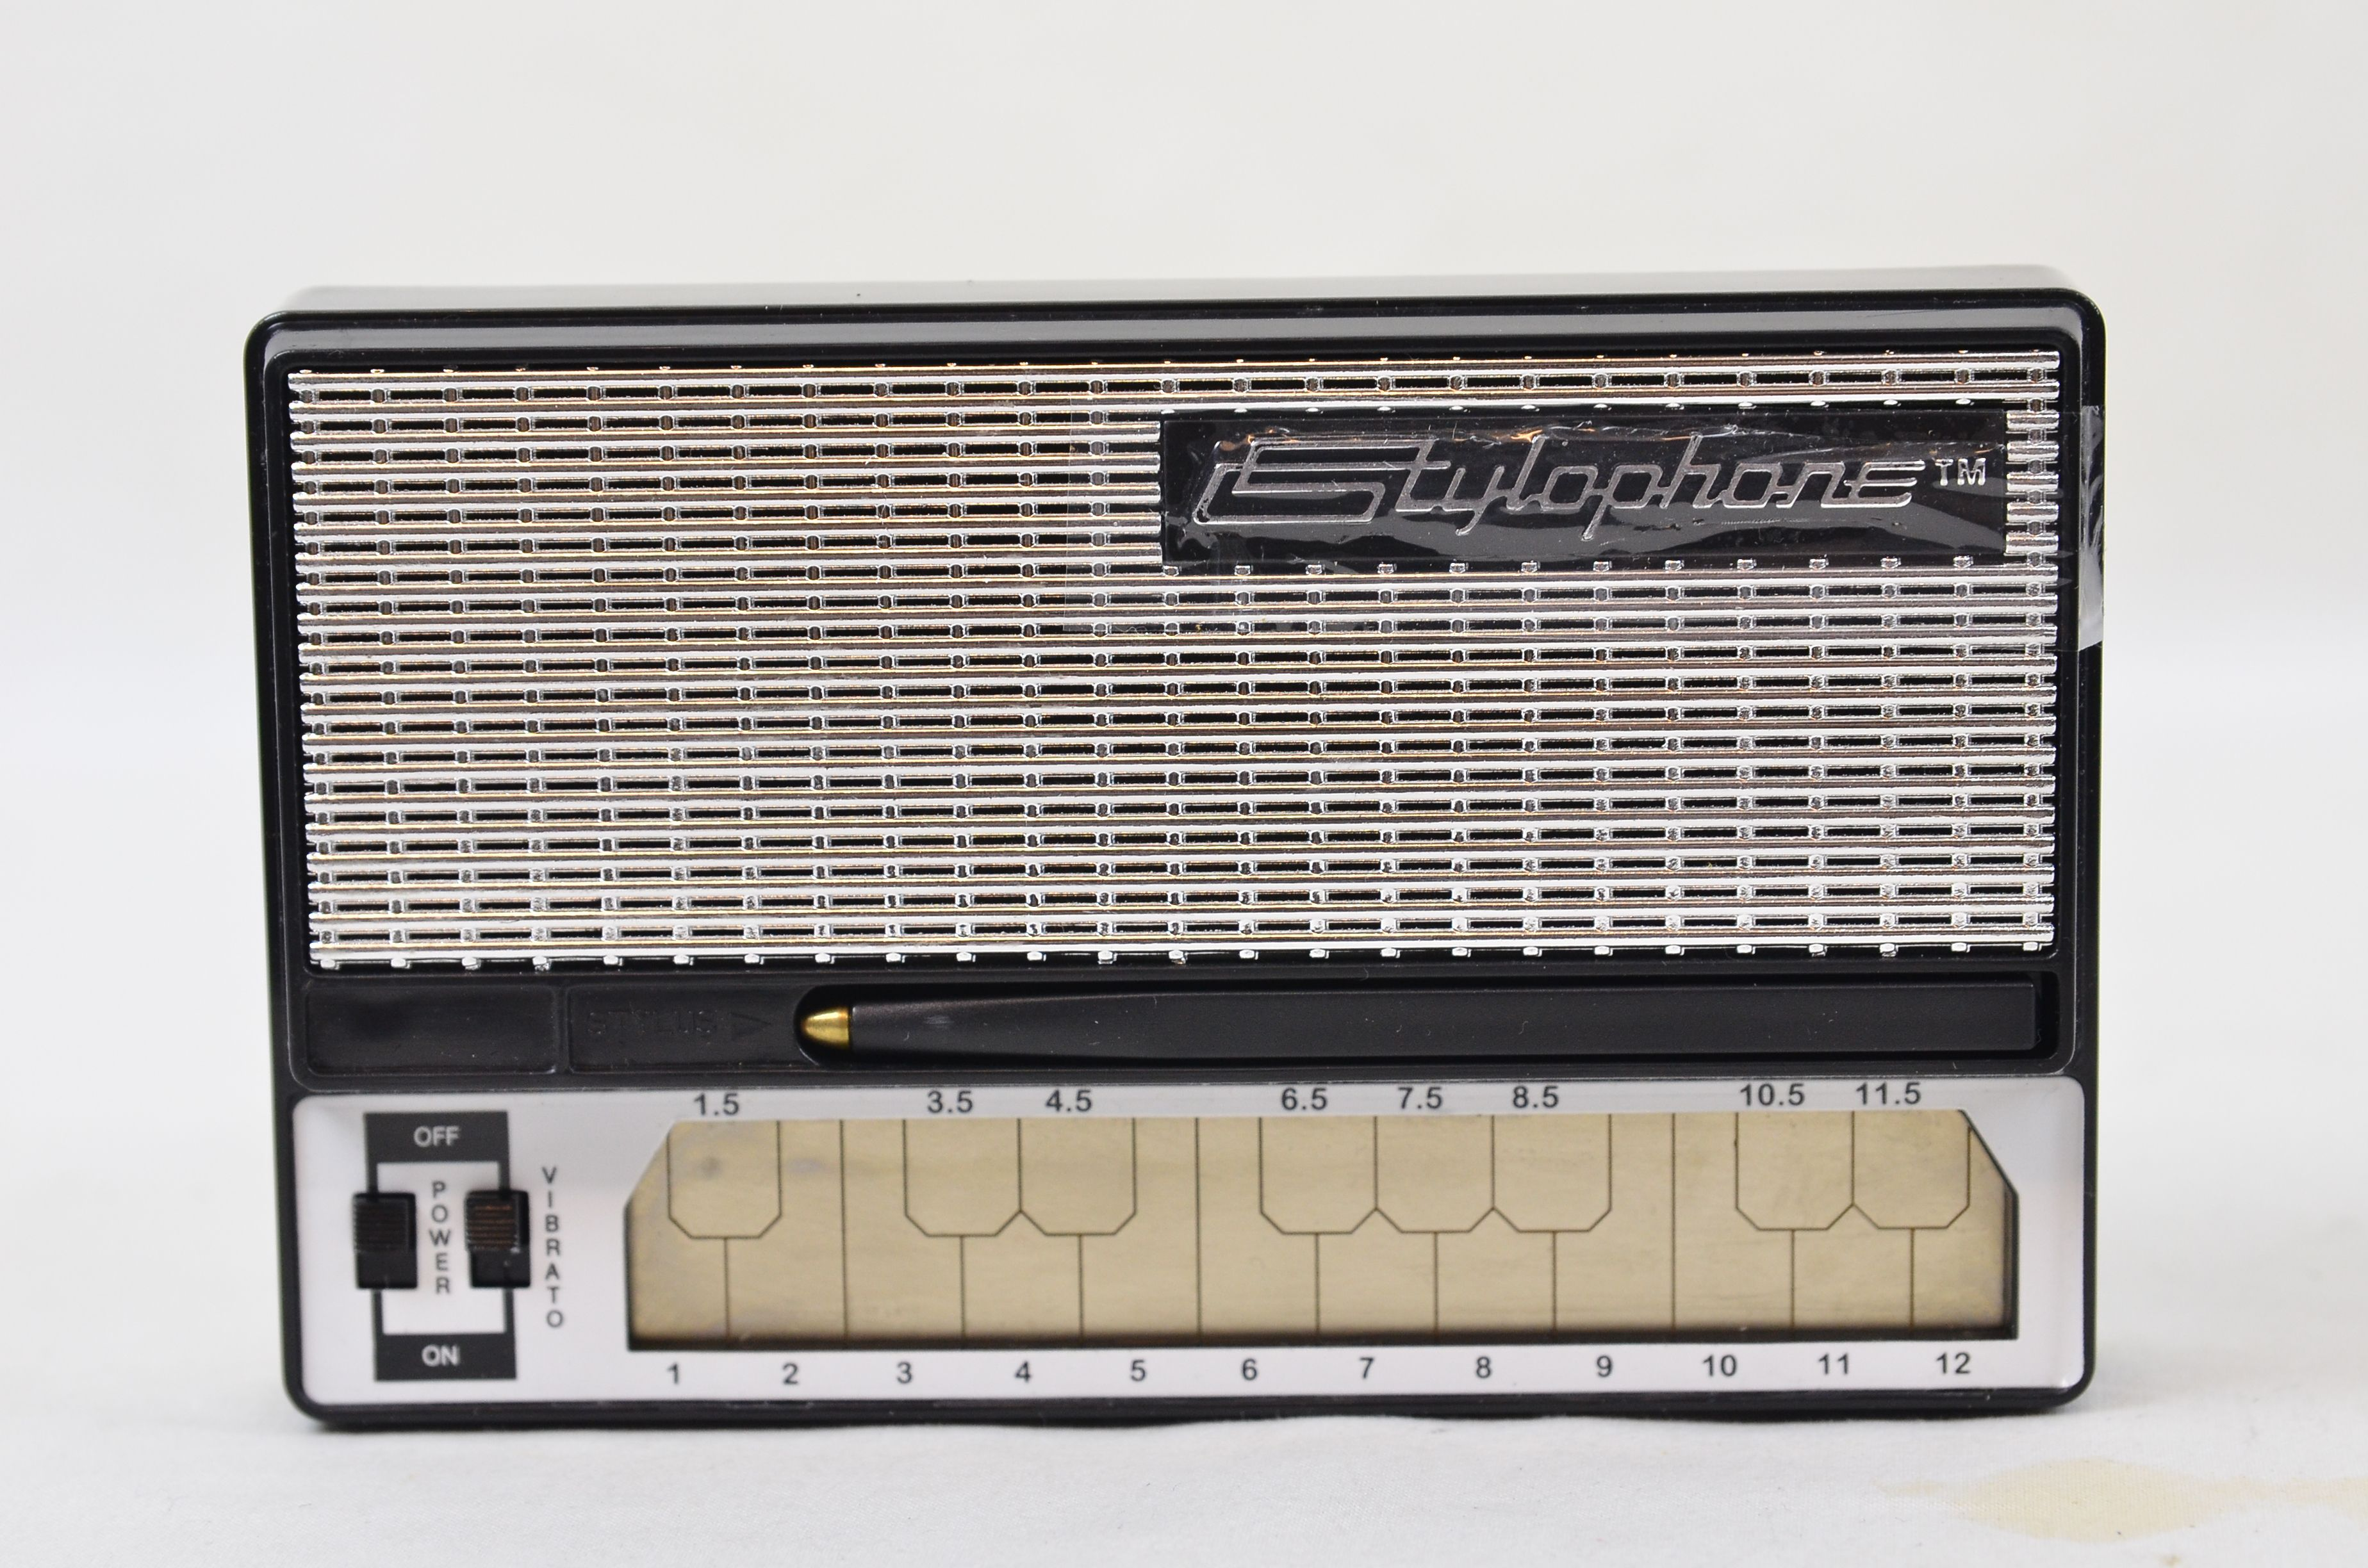 Dubreq Stylophone - The Original Pocket Synthesizer S-1 Pocket Electronic Organ 4